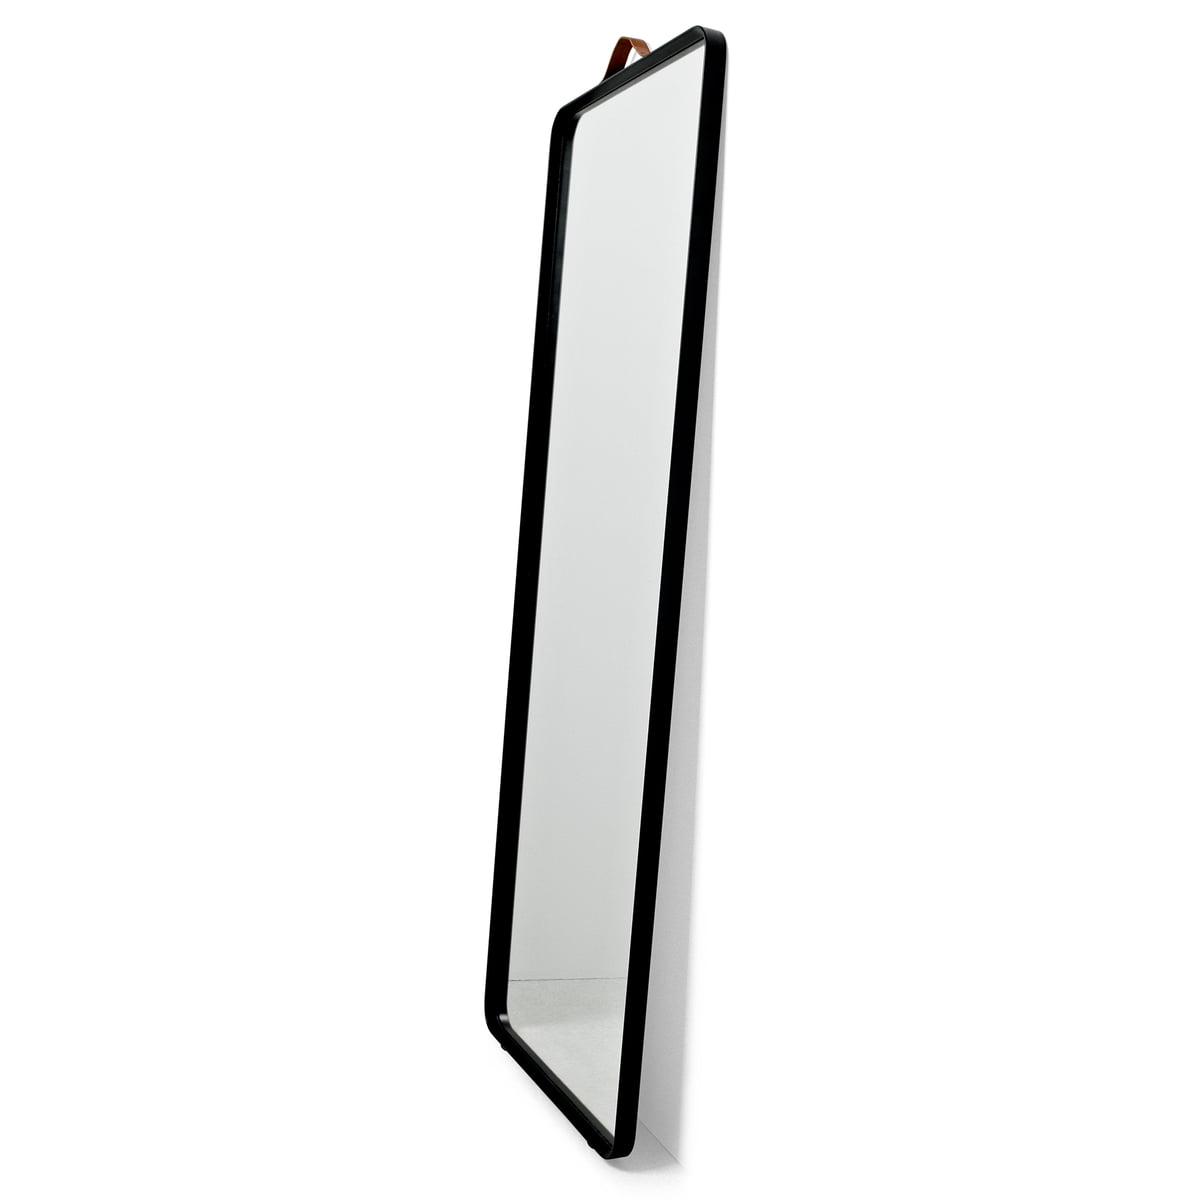 Norm Floor Mirror With Black Frame